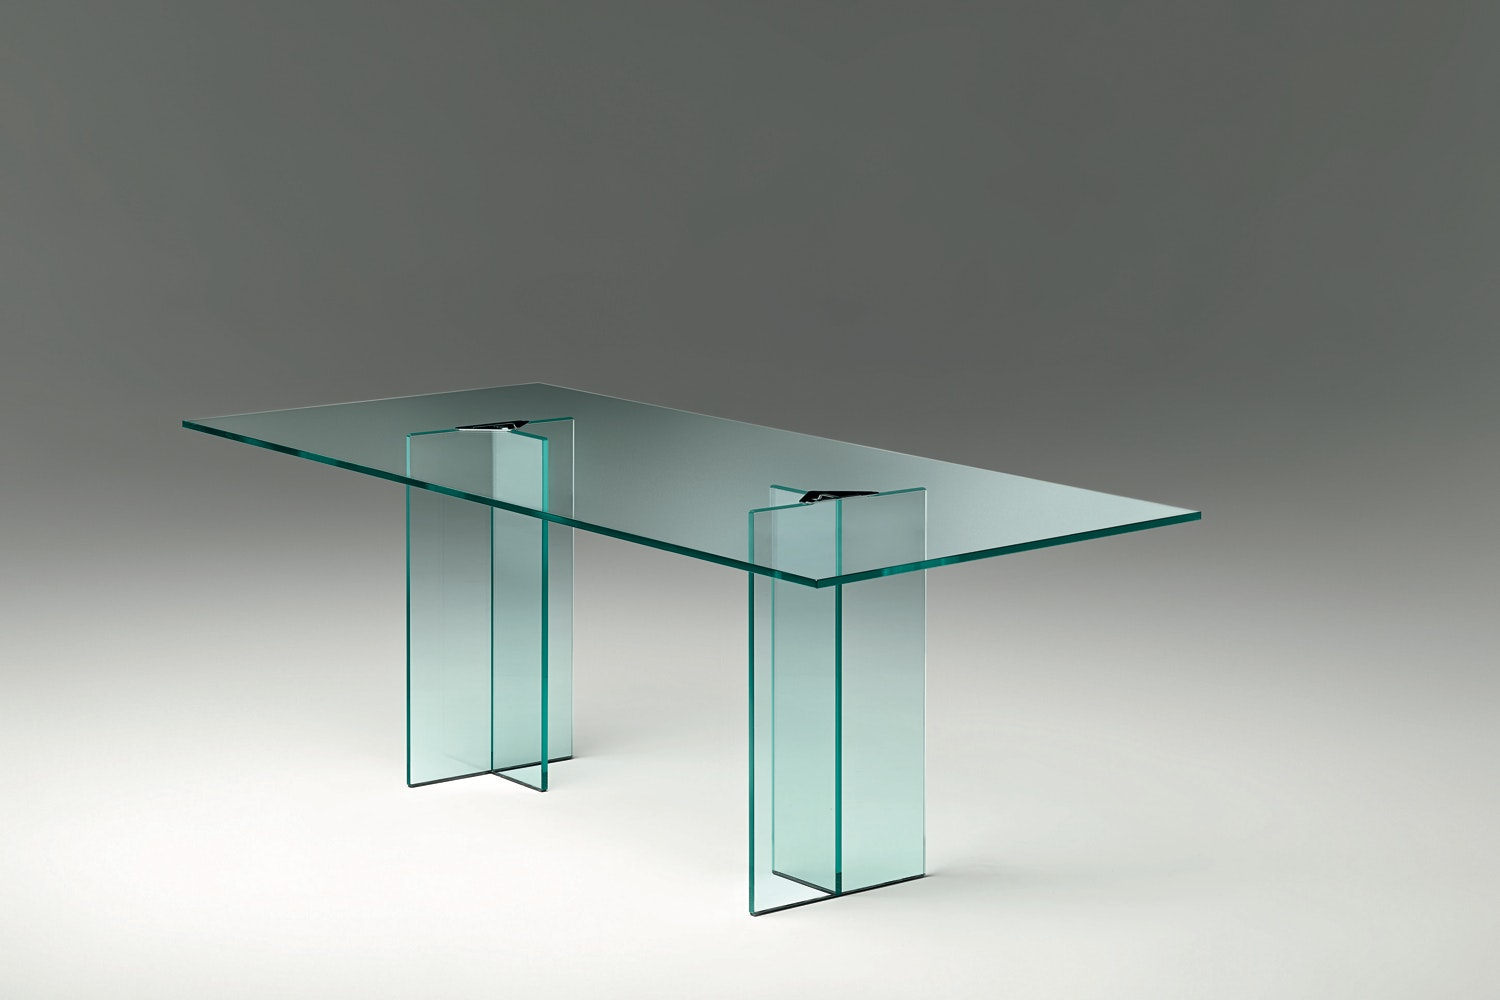 Llt Ofx Executive Table by Dante O.Benini & Luca Gonzo for Fiam Italia